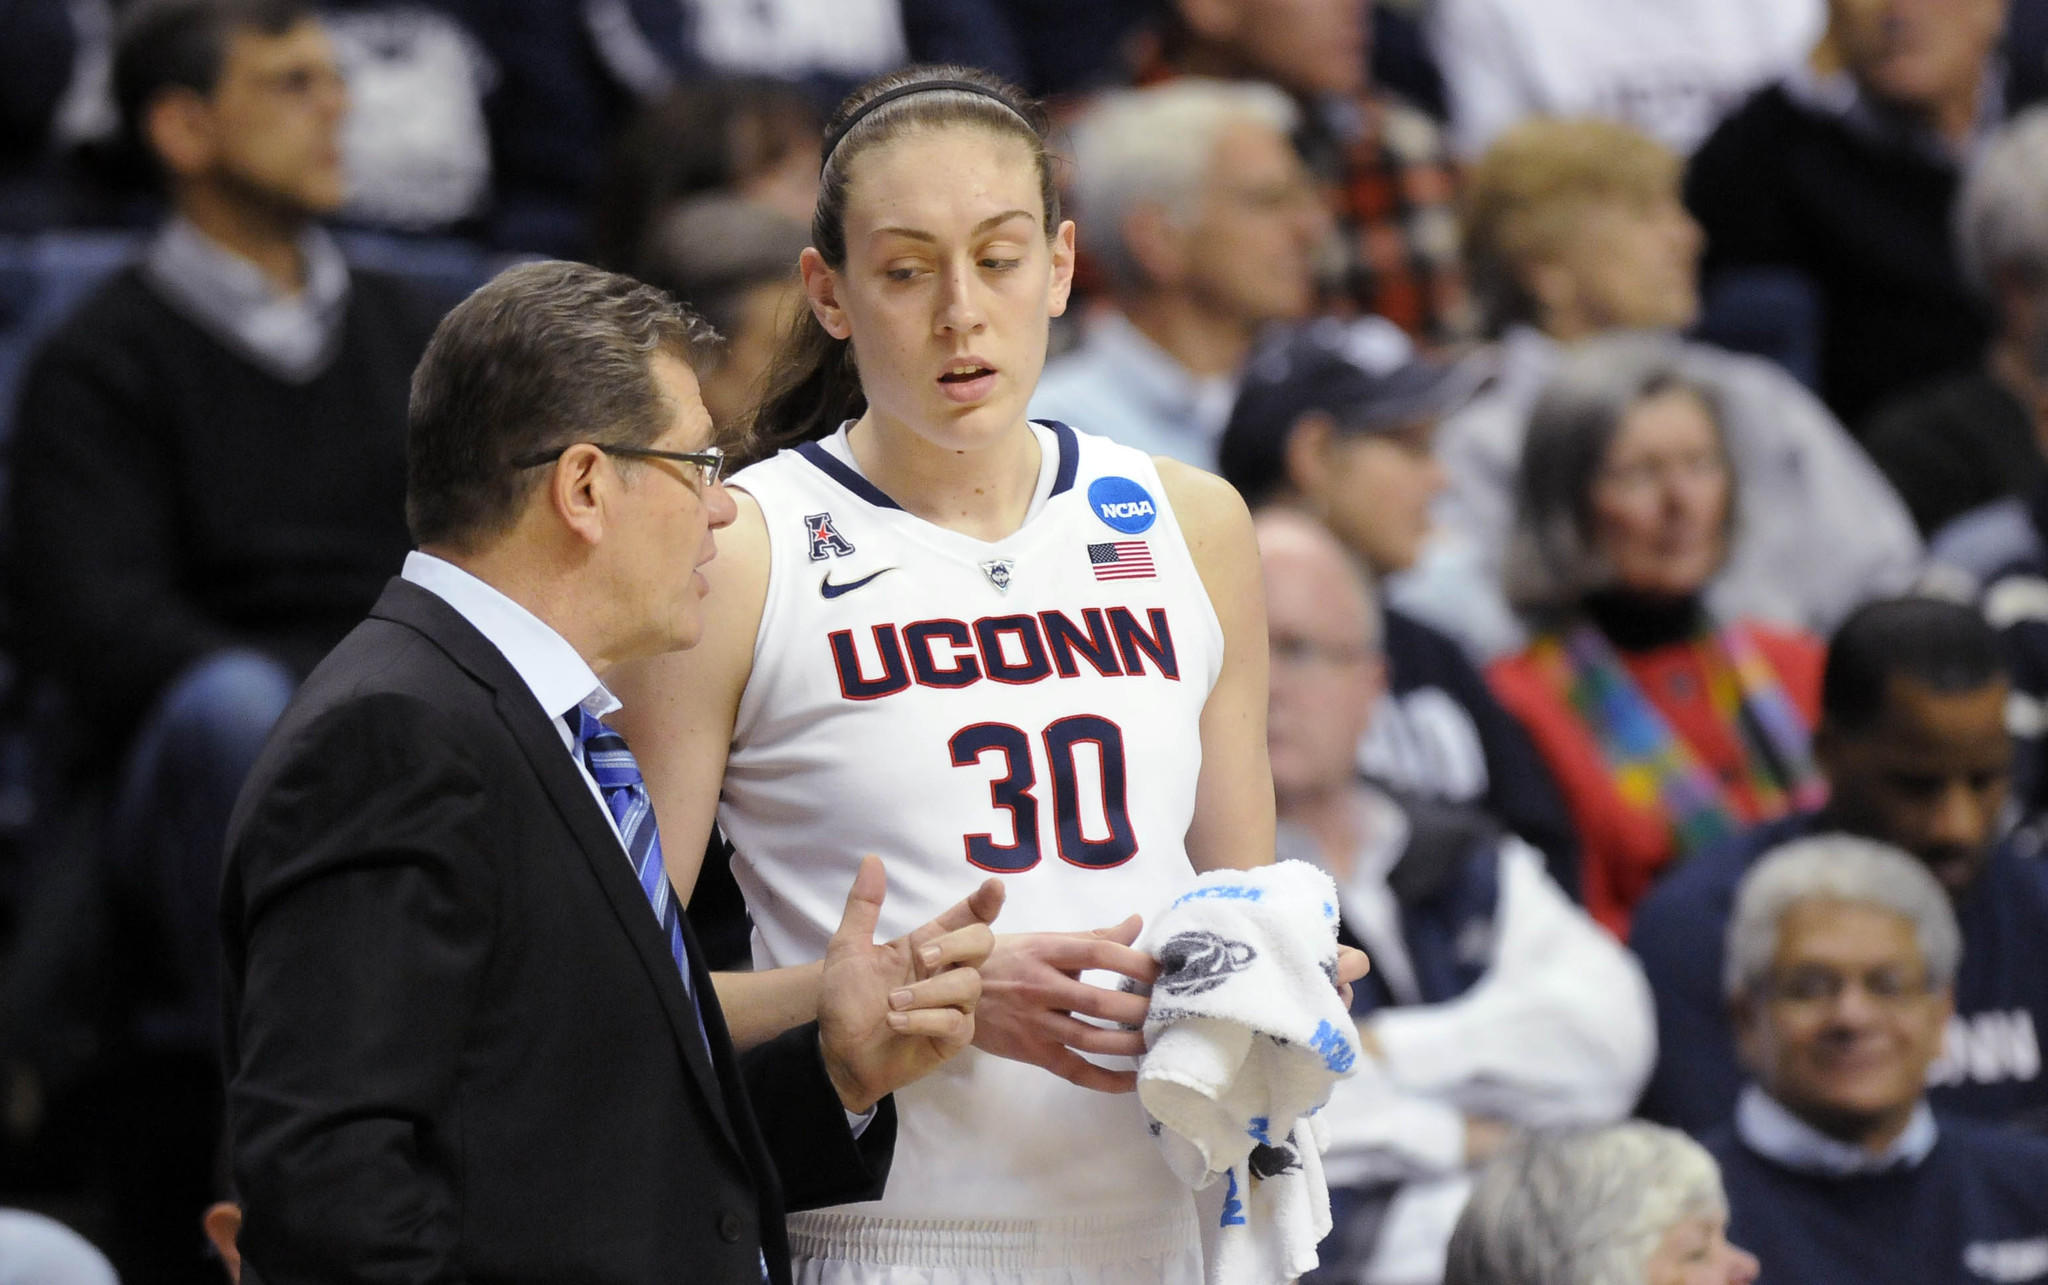 UConn Huskies head coach Geno Auriemma instructs UConn Huskies forward Breanna Stewart (30) in the second half of their second-round game against St. Joseph's in the the NCAA Tournament at Gampel Pavilion Tuesday. UConn won, 91-52, to advance to the Sweet Sixteen in Lincoln, Nebraska.